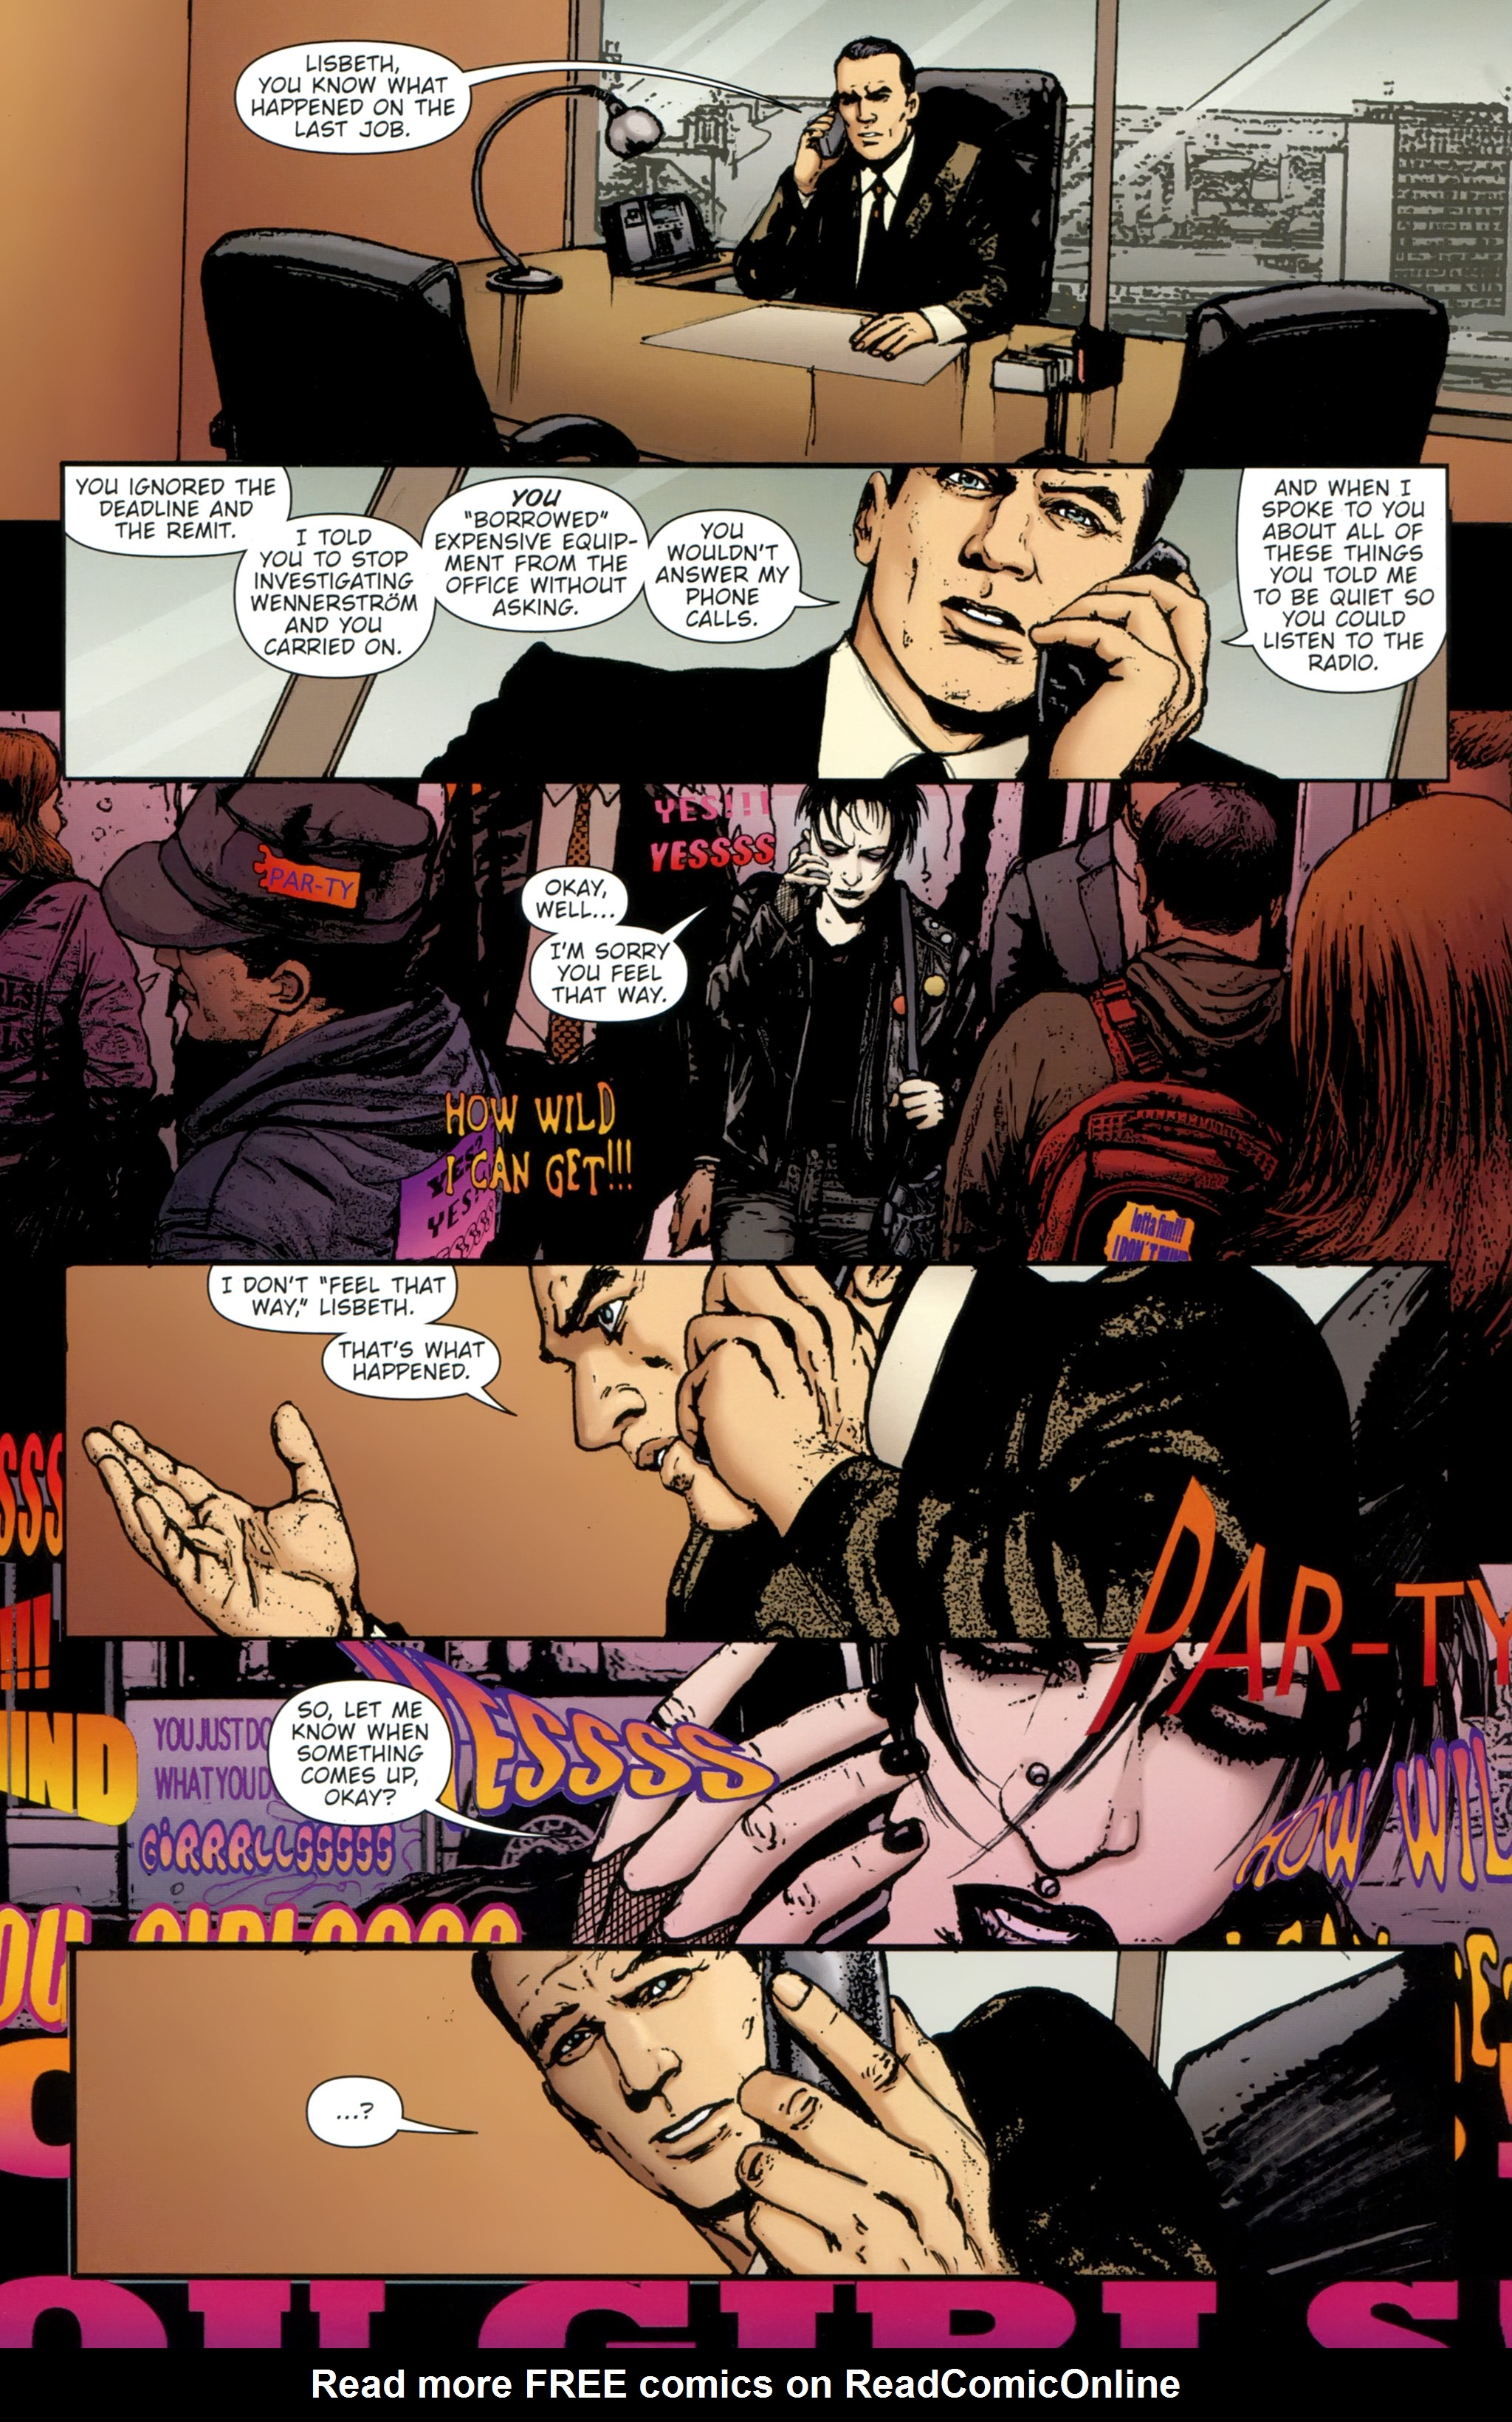 Read online The Girl With the Dragon Tattoo comic -  Issue # TPB 2 - 25